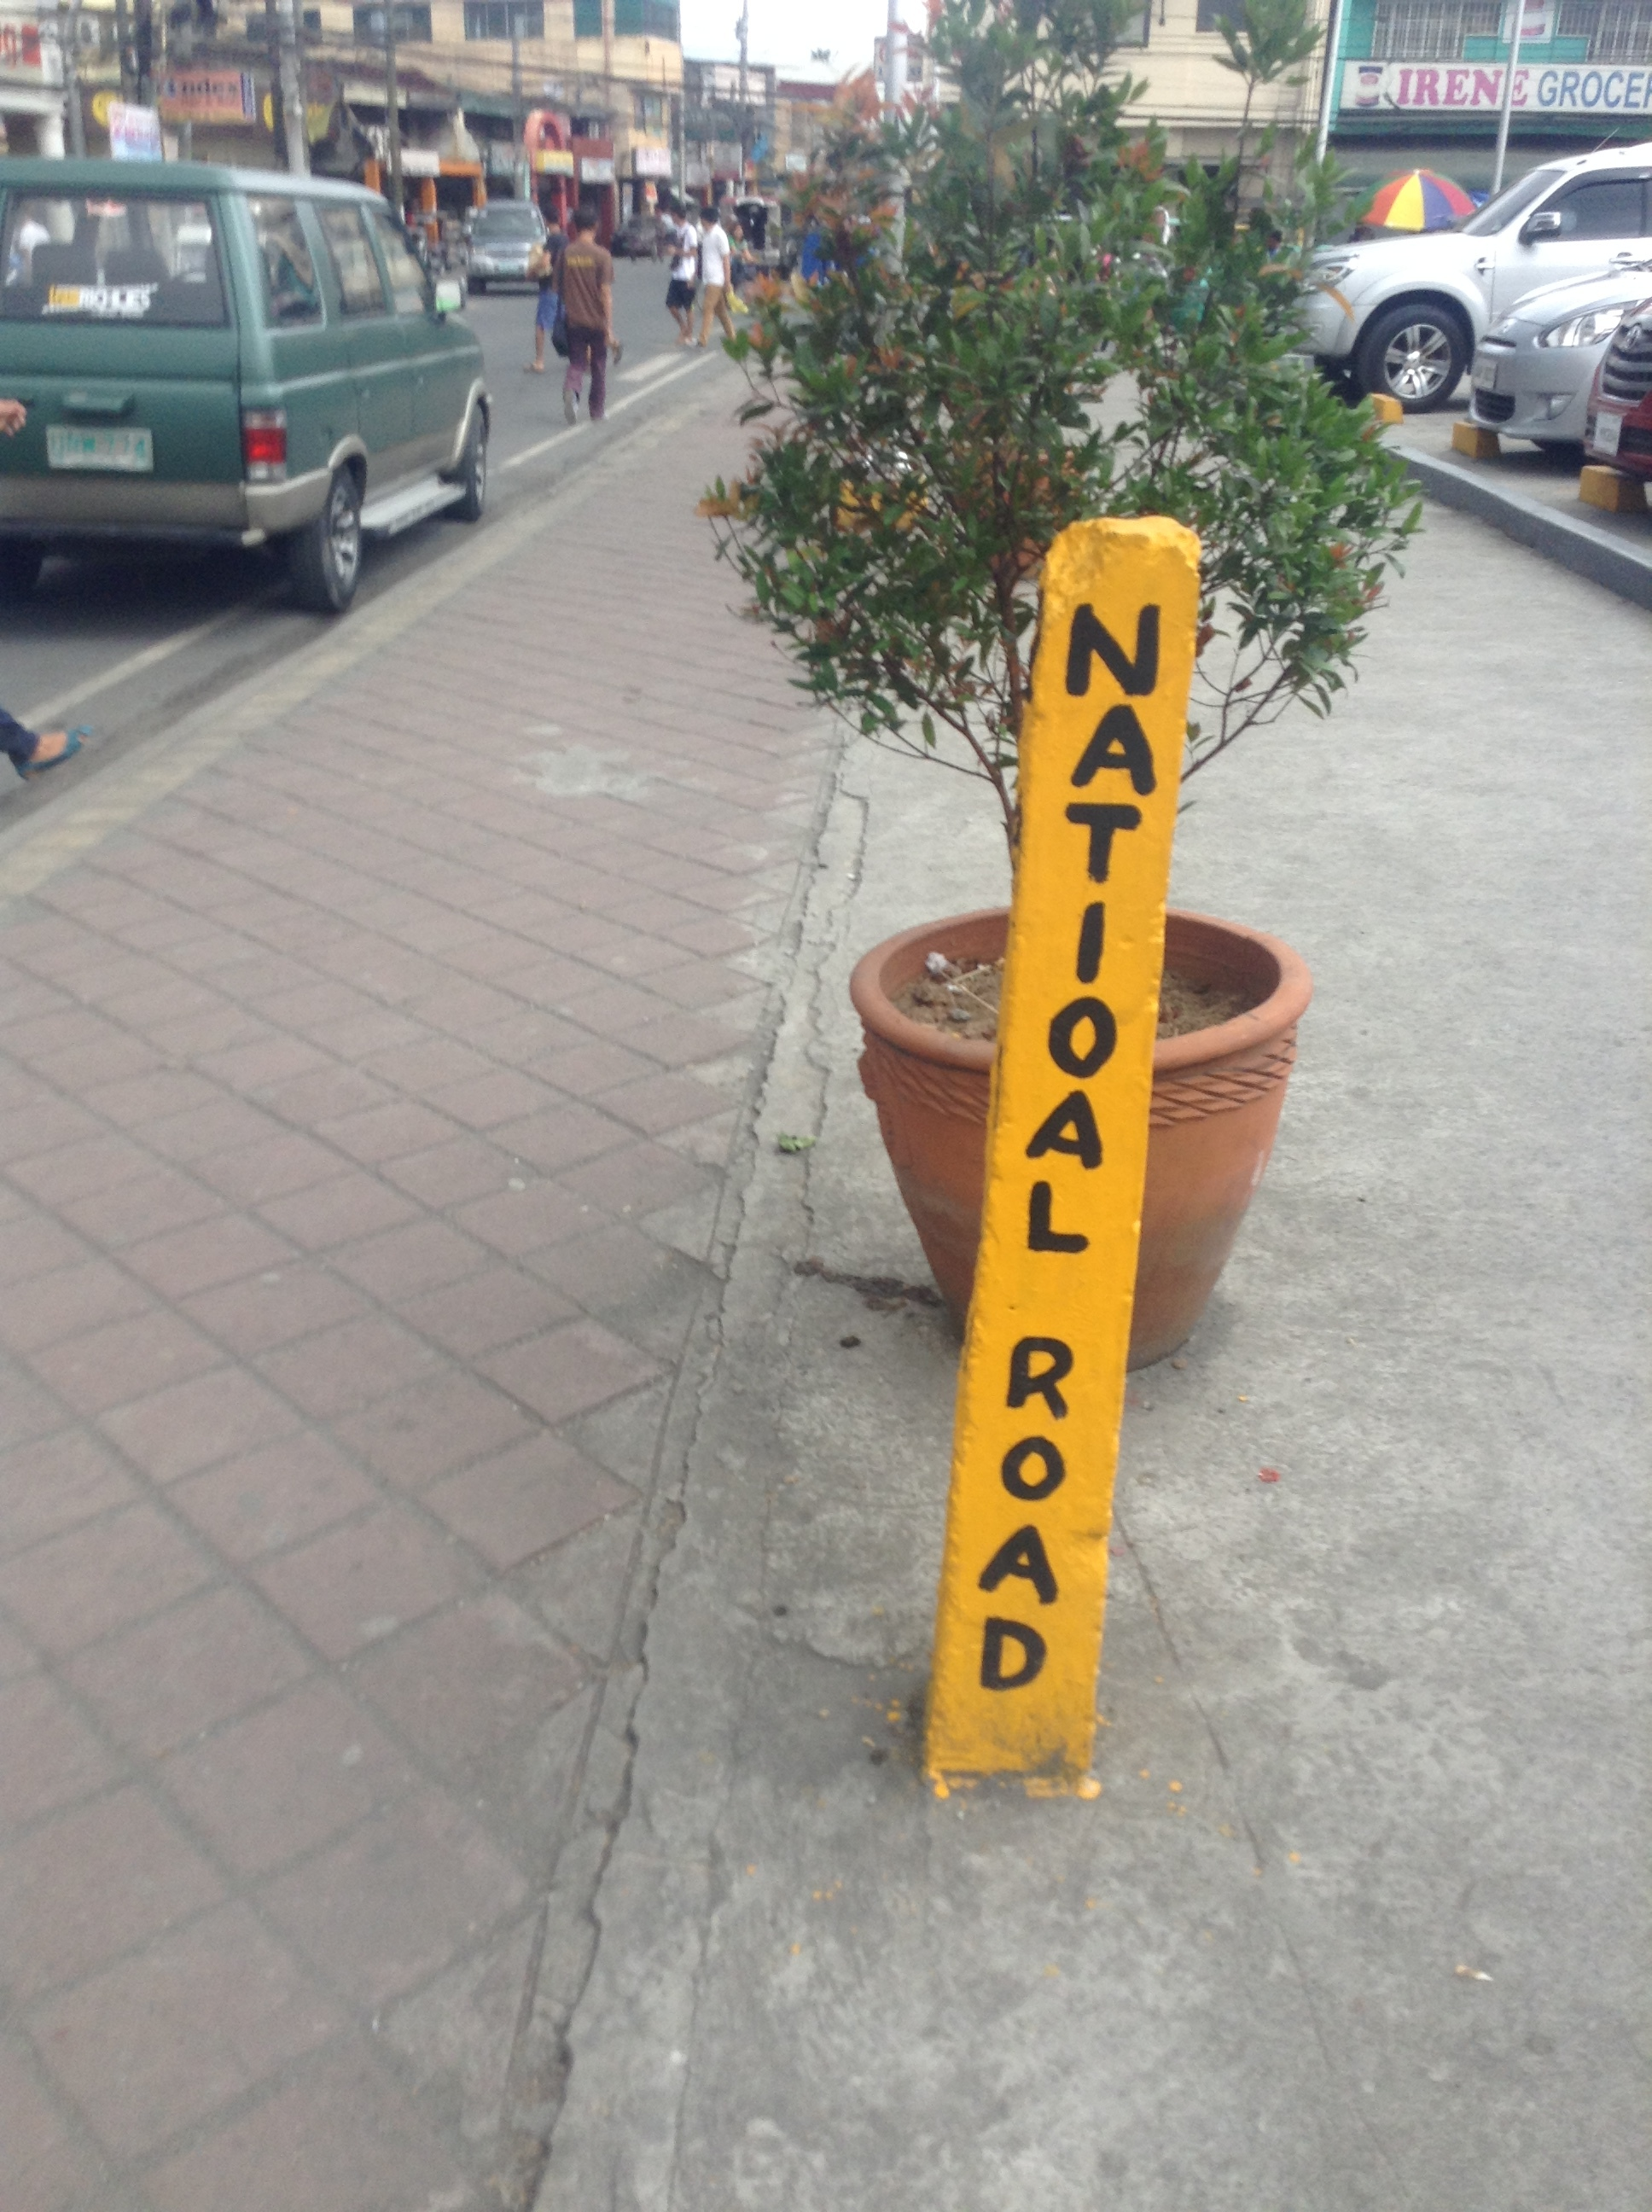 You don't have to walk far for the road signs to start getting exotic. (Outside the Jollibee,Cavite City)